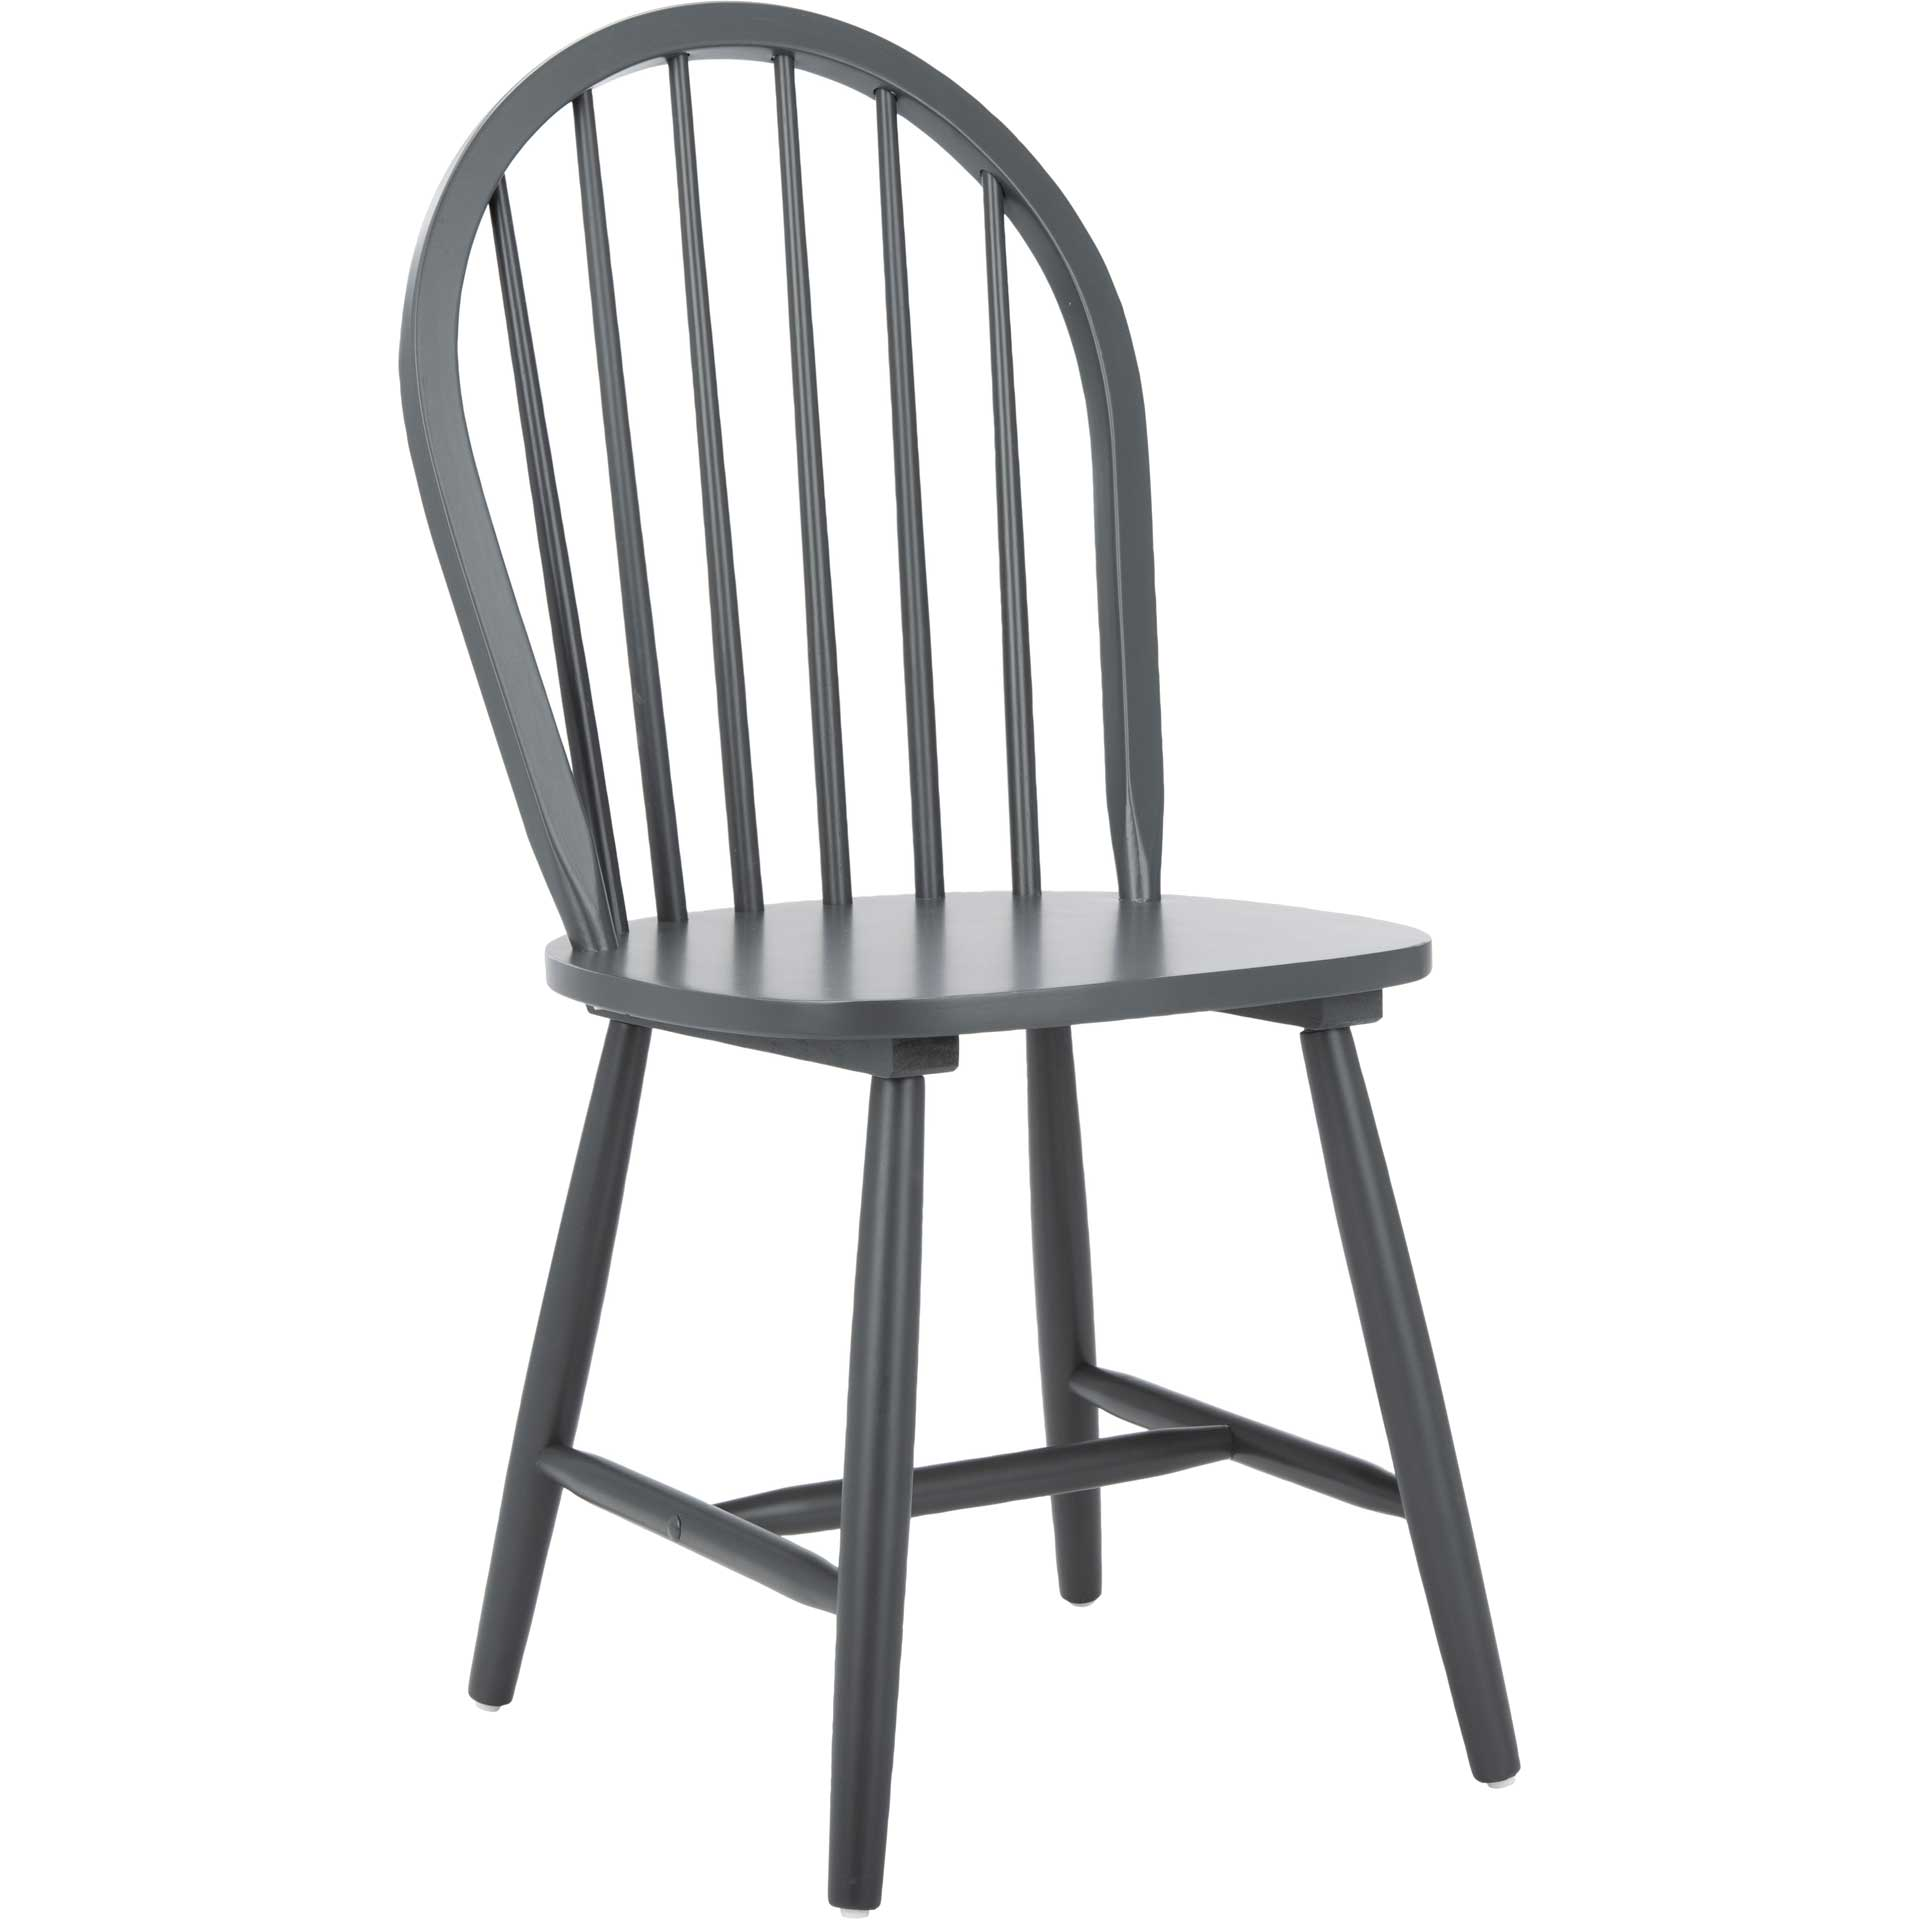 Calista Spindle Back Chair Gray (Set of 2)